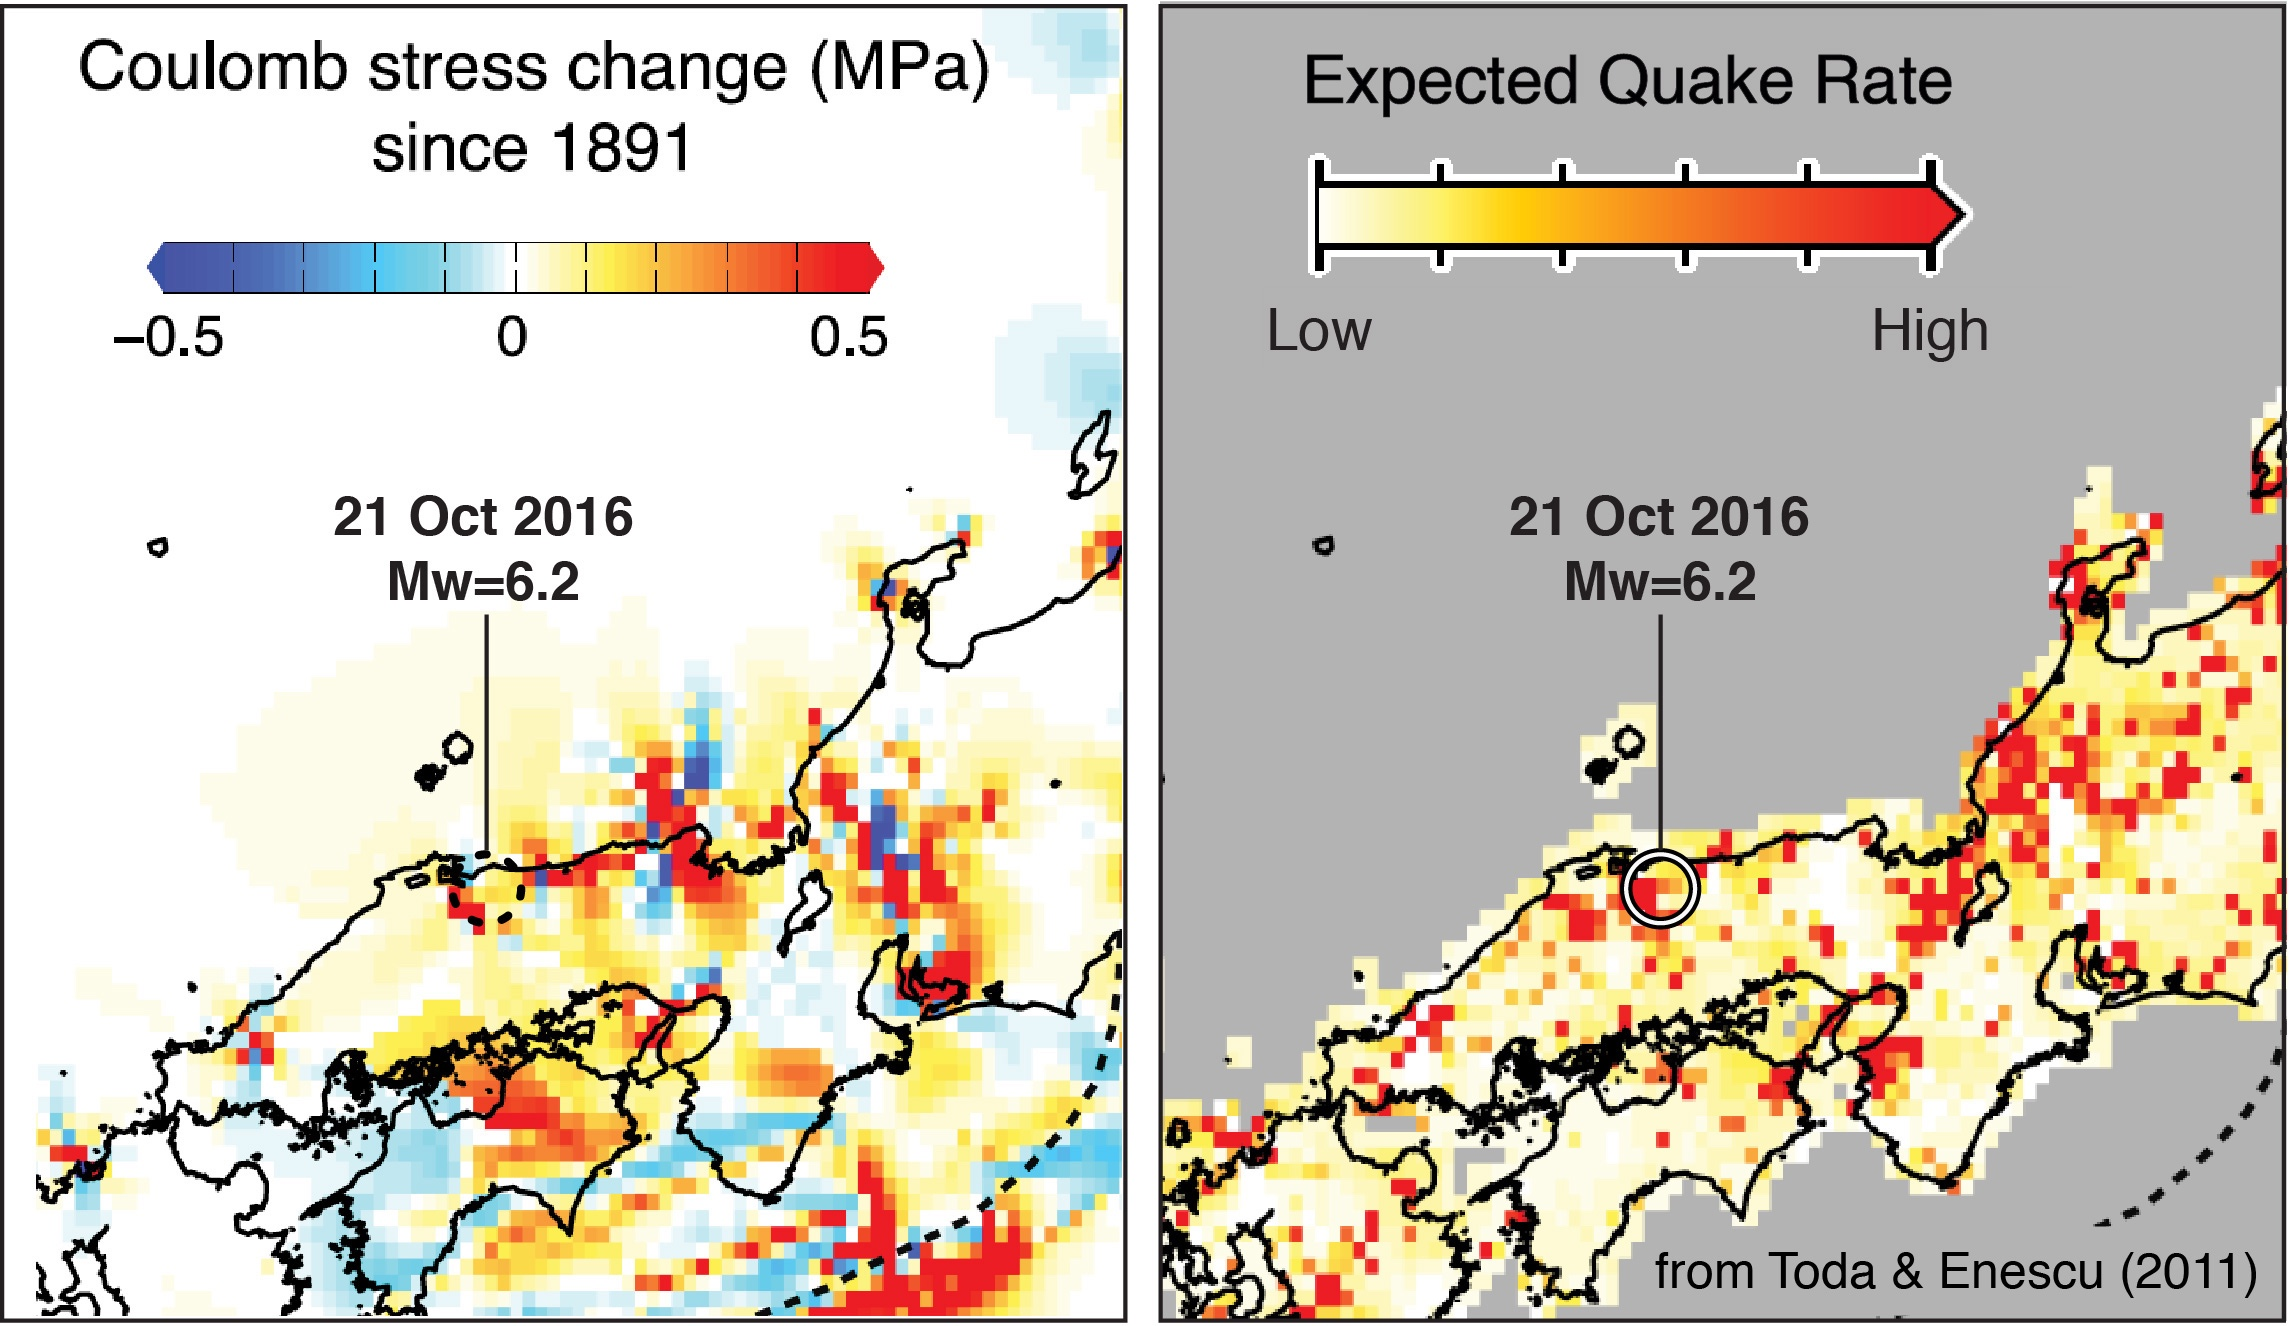 Japan_earthquake_coulomb_stress_change_map